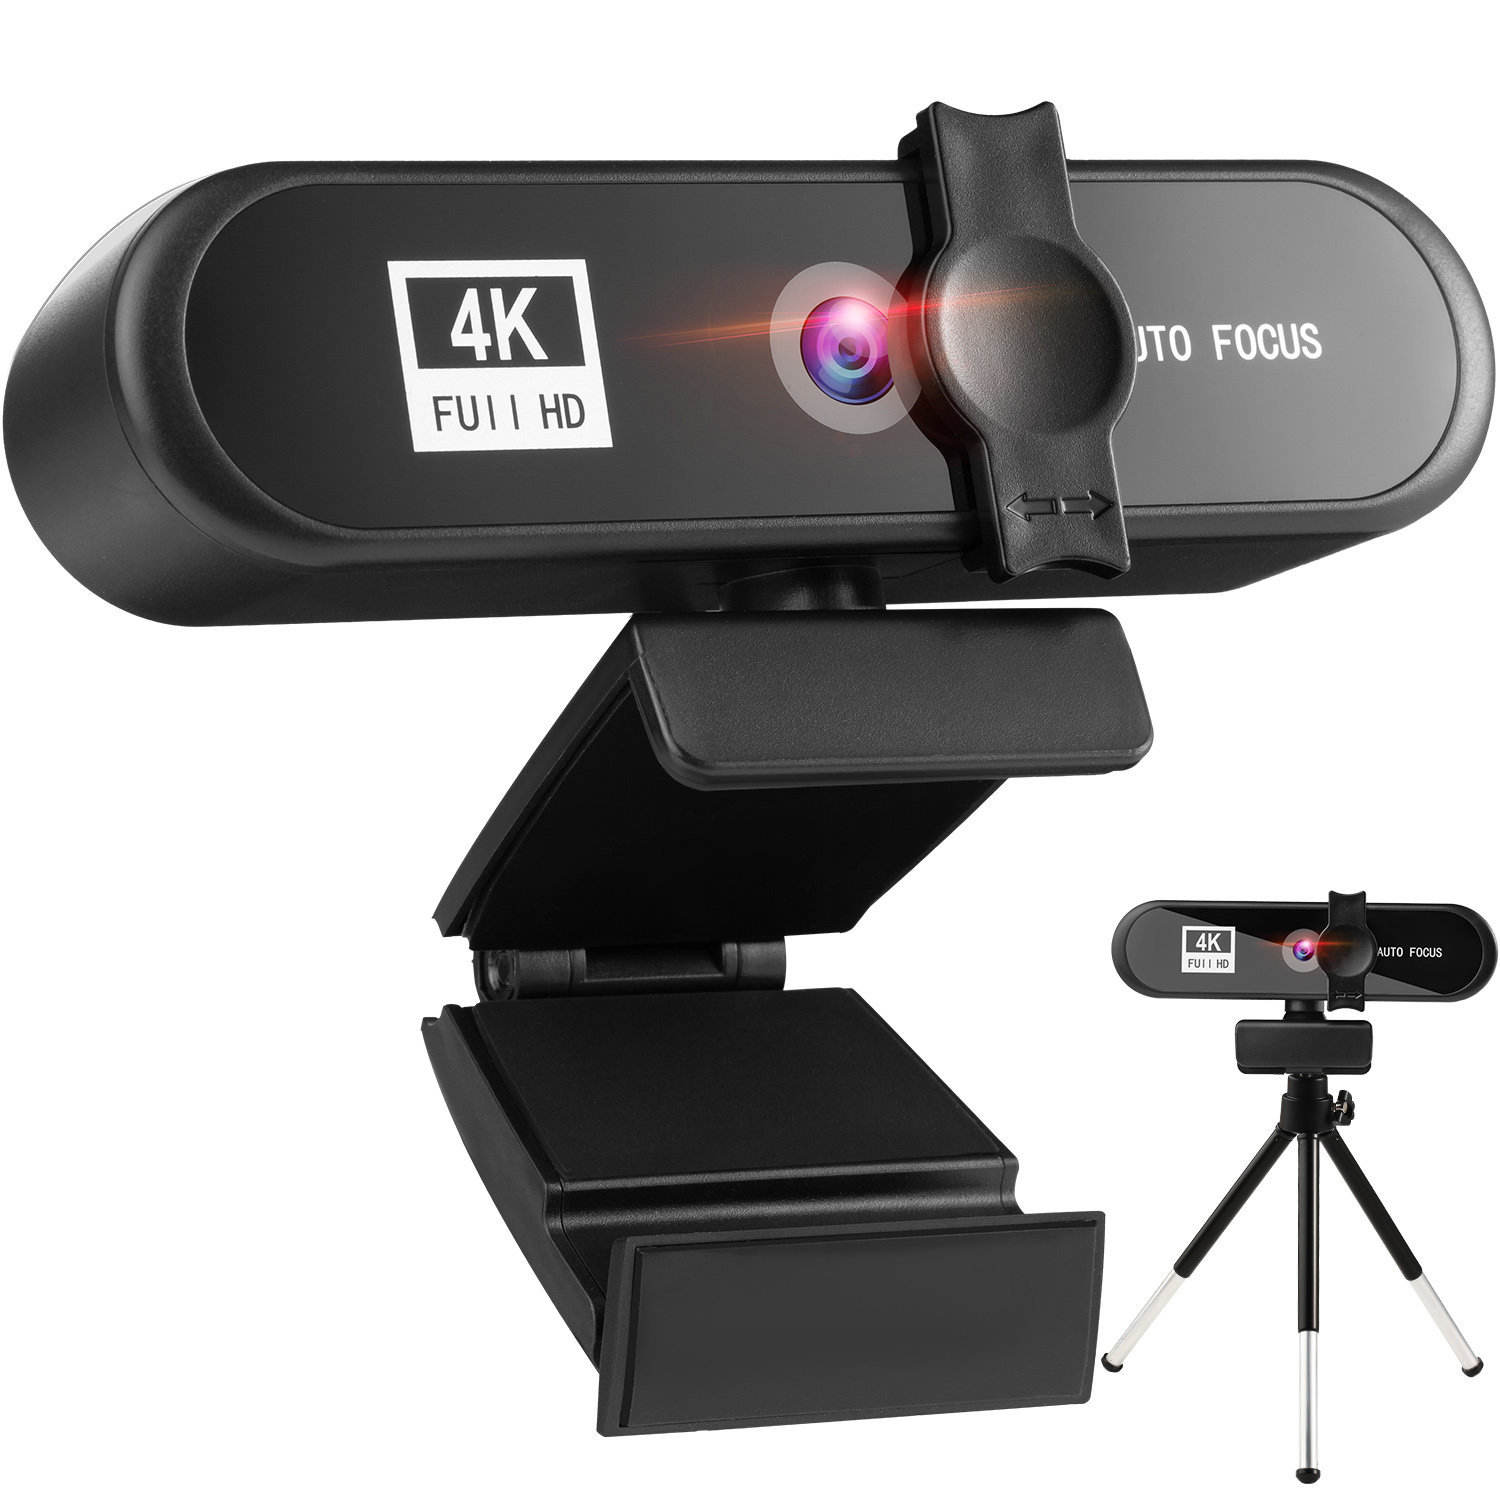 Super 4K FHD Usb Webcam Built-In Mikrofon Autofocus 8MP Komputer PC Kamera untuk Video Youtube LIVE Web kamera